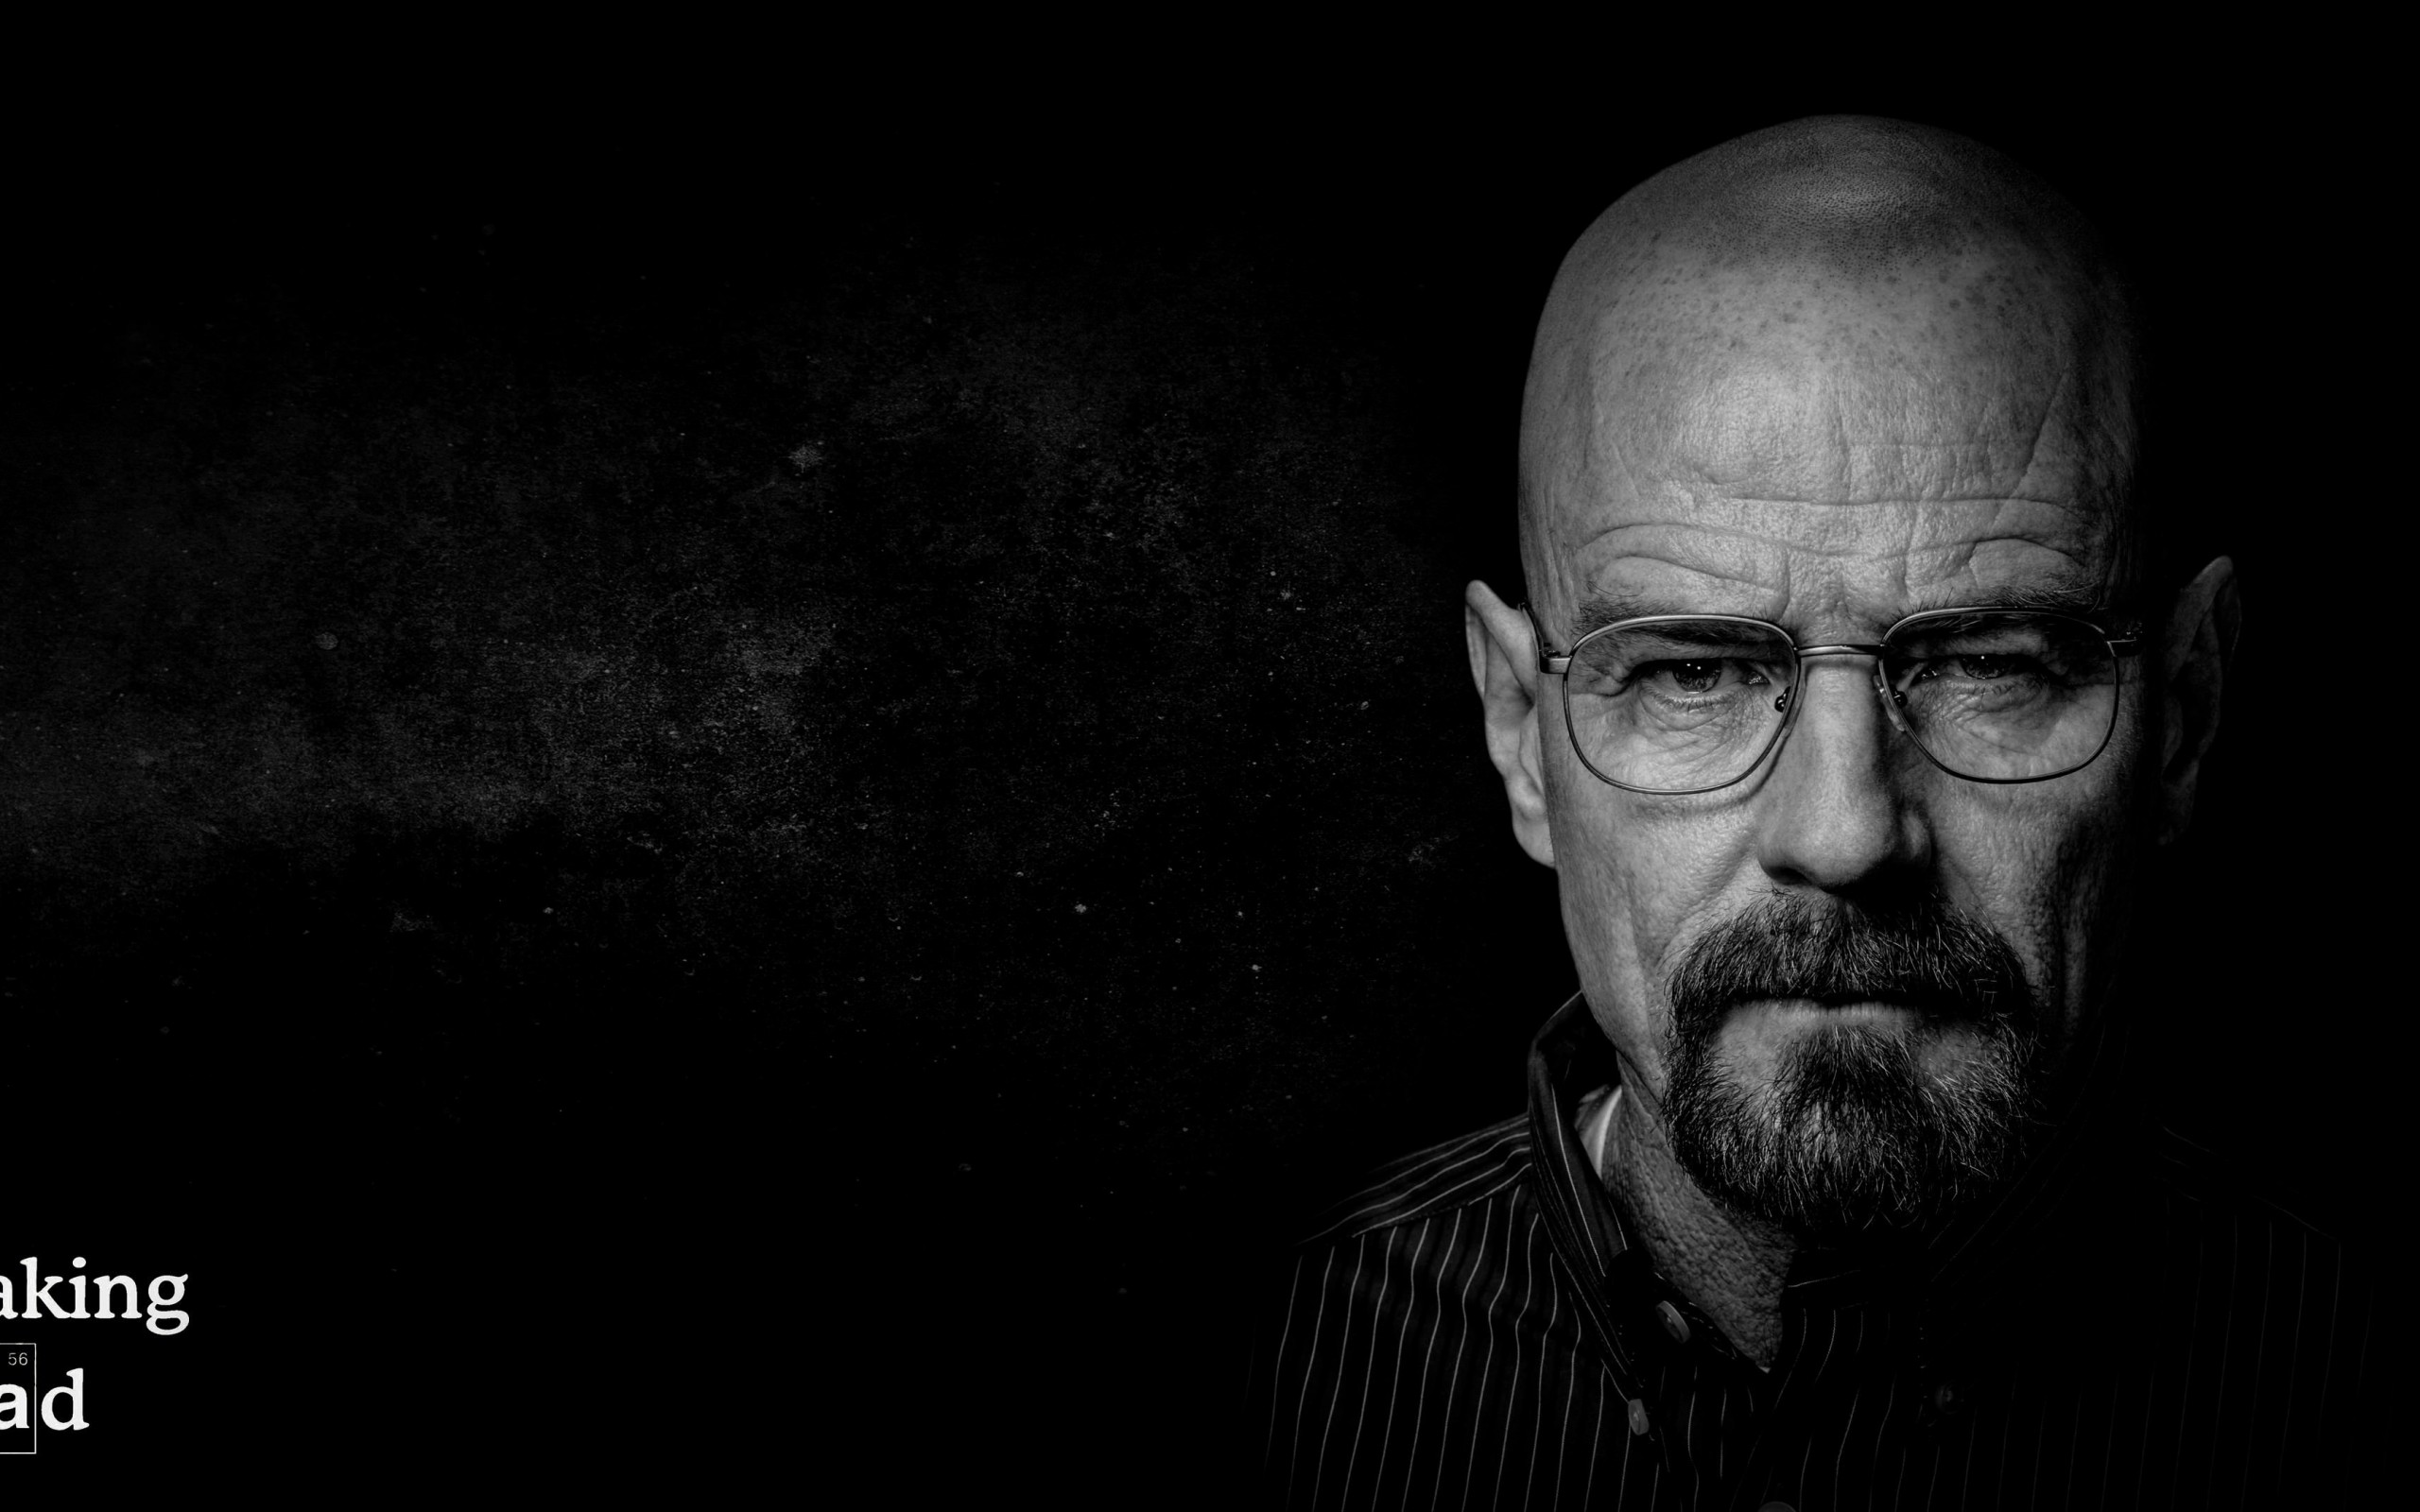 Breaking Bad - Walter White - Black & White Wallpaper for Desktop 2560x1600